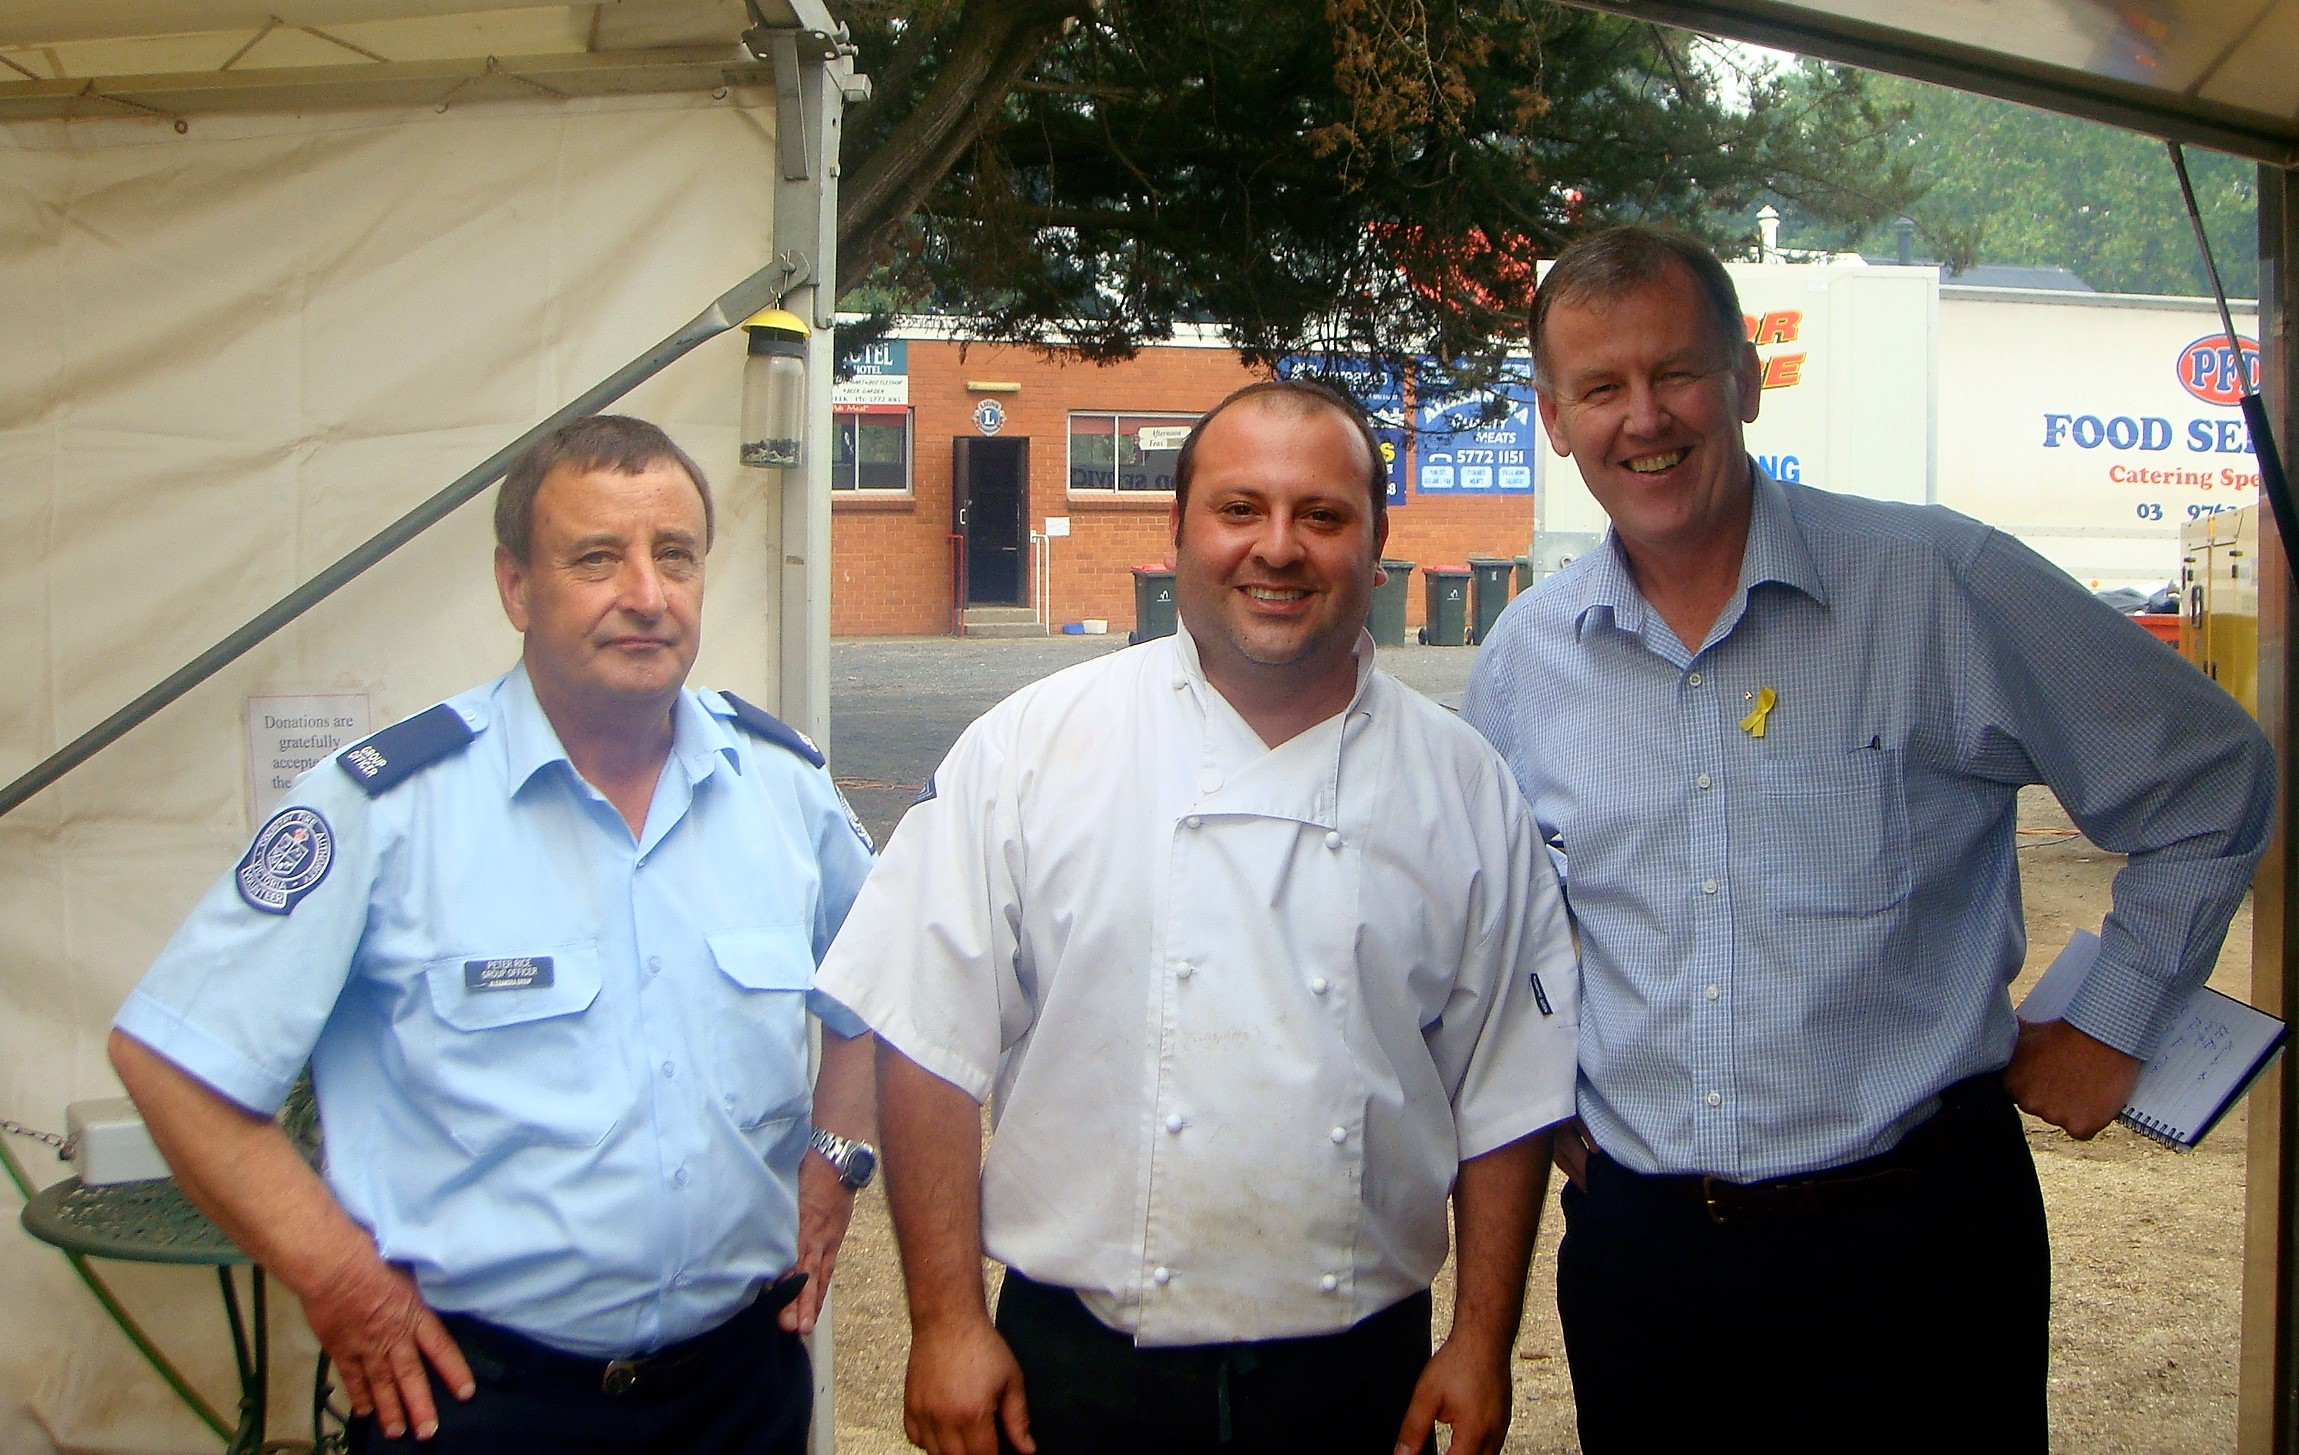 Frank joined the thousand of volunteers after the black Saturday fires in Victoria (2009) -